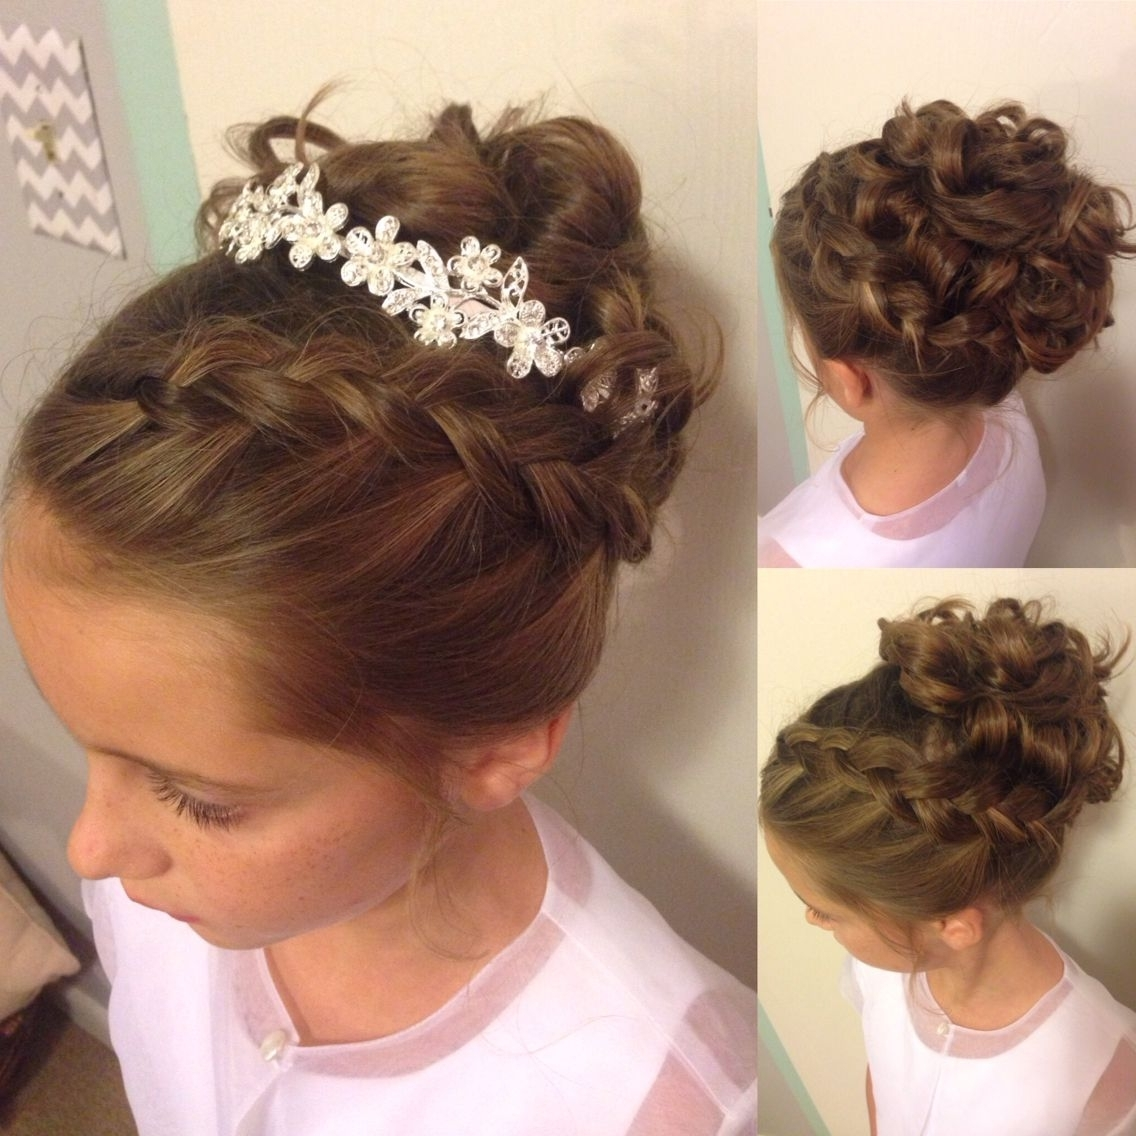 Pinmary Rose On My Work | Pinterest | Updo, Weddings And Girls With Easy Updo Hairstyles For Kids (View 11 of 15)